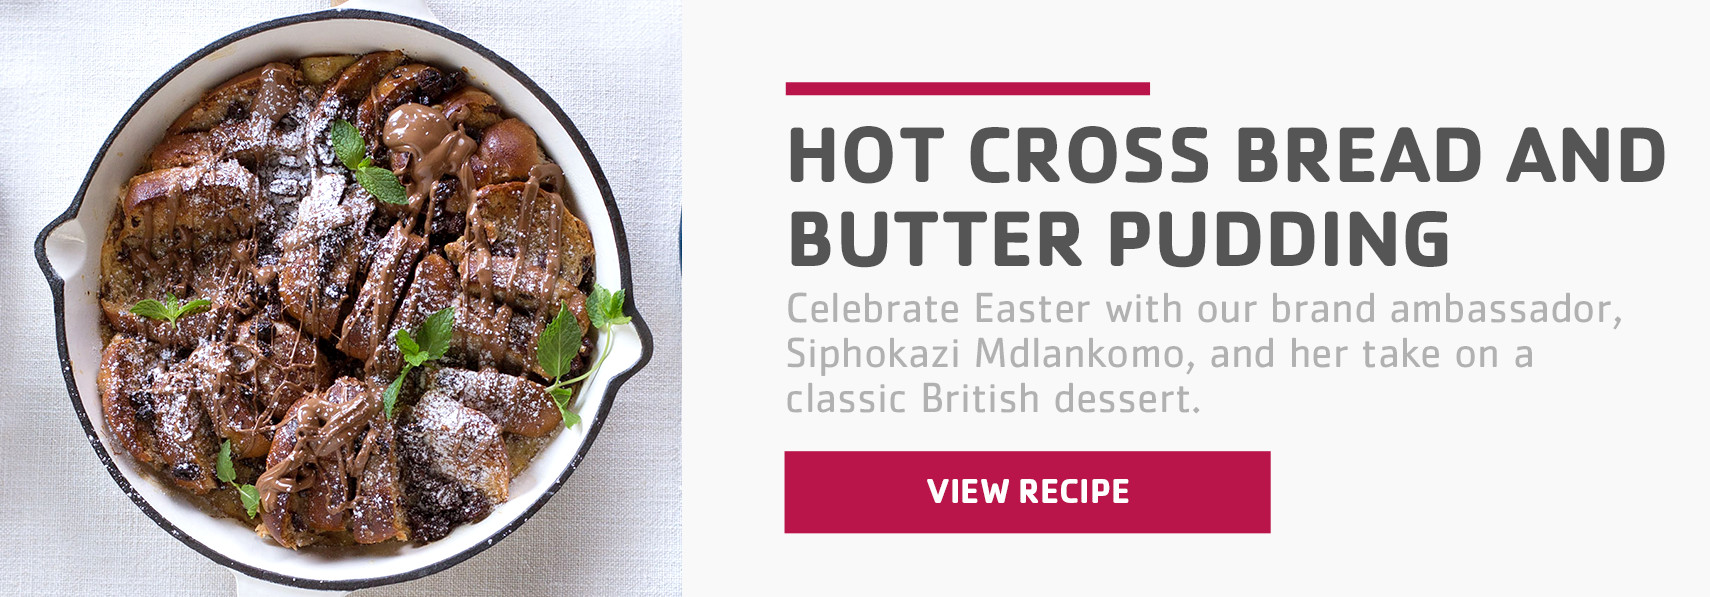 Hot cross bread and butter pudding recipe listing page banner.jpg